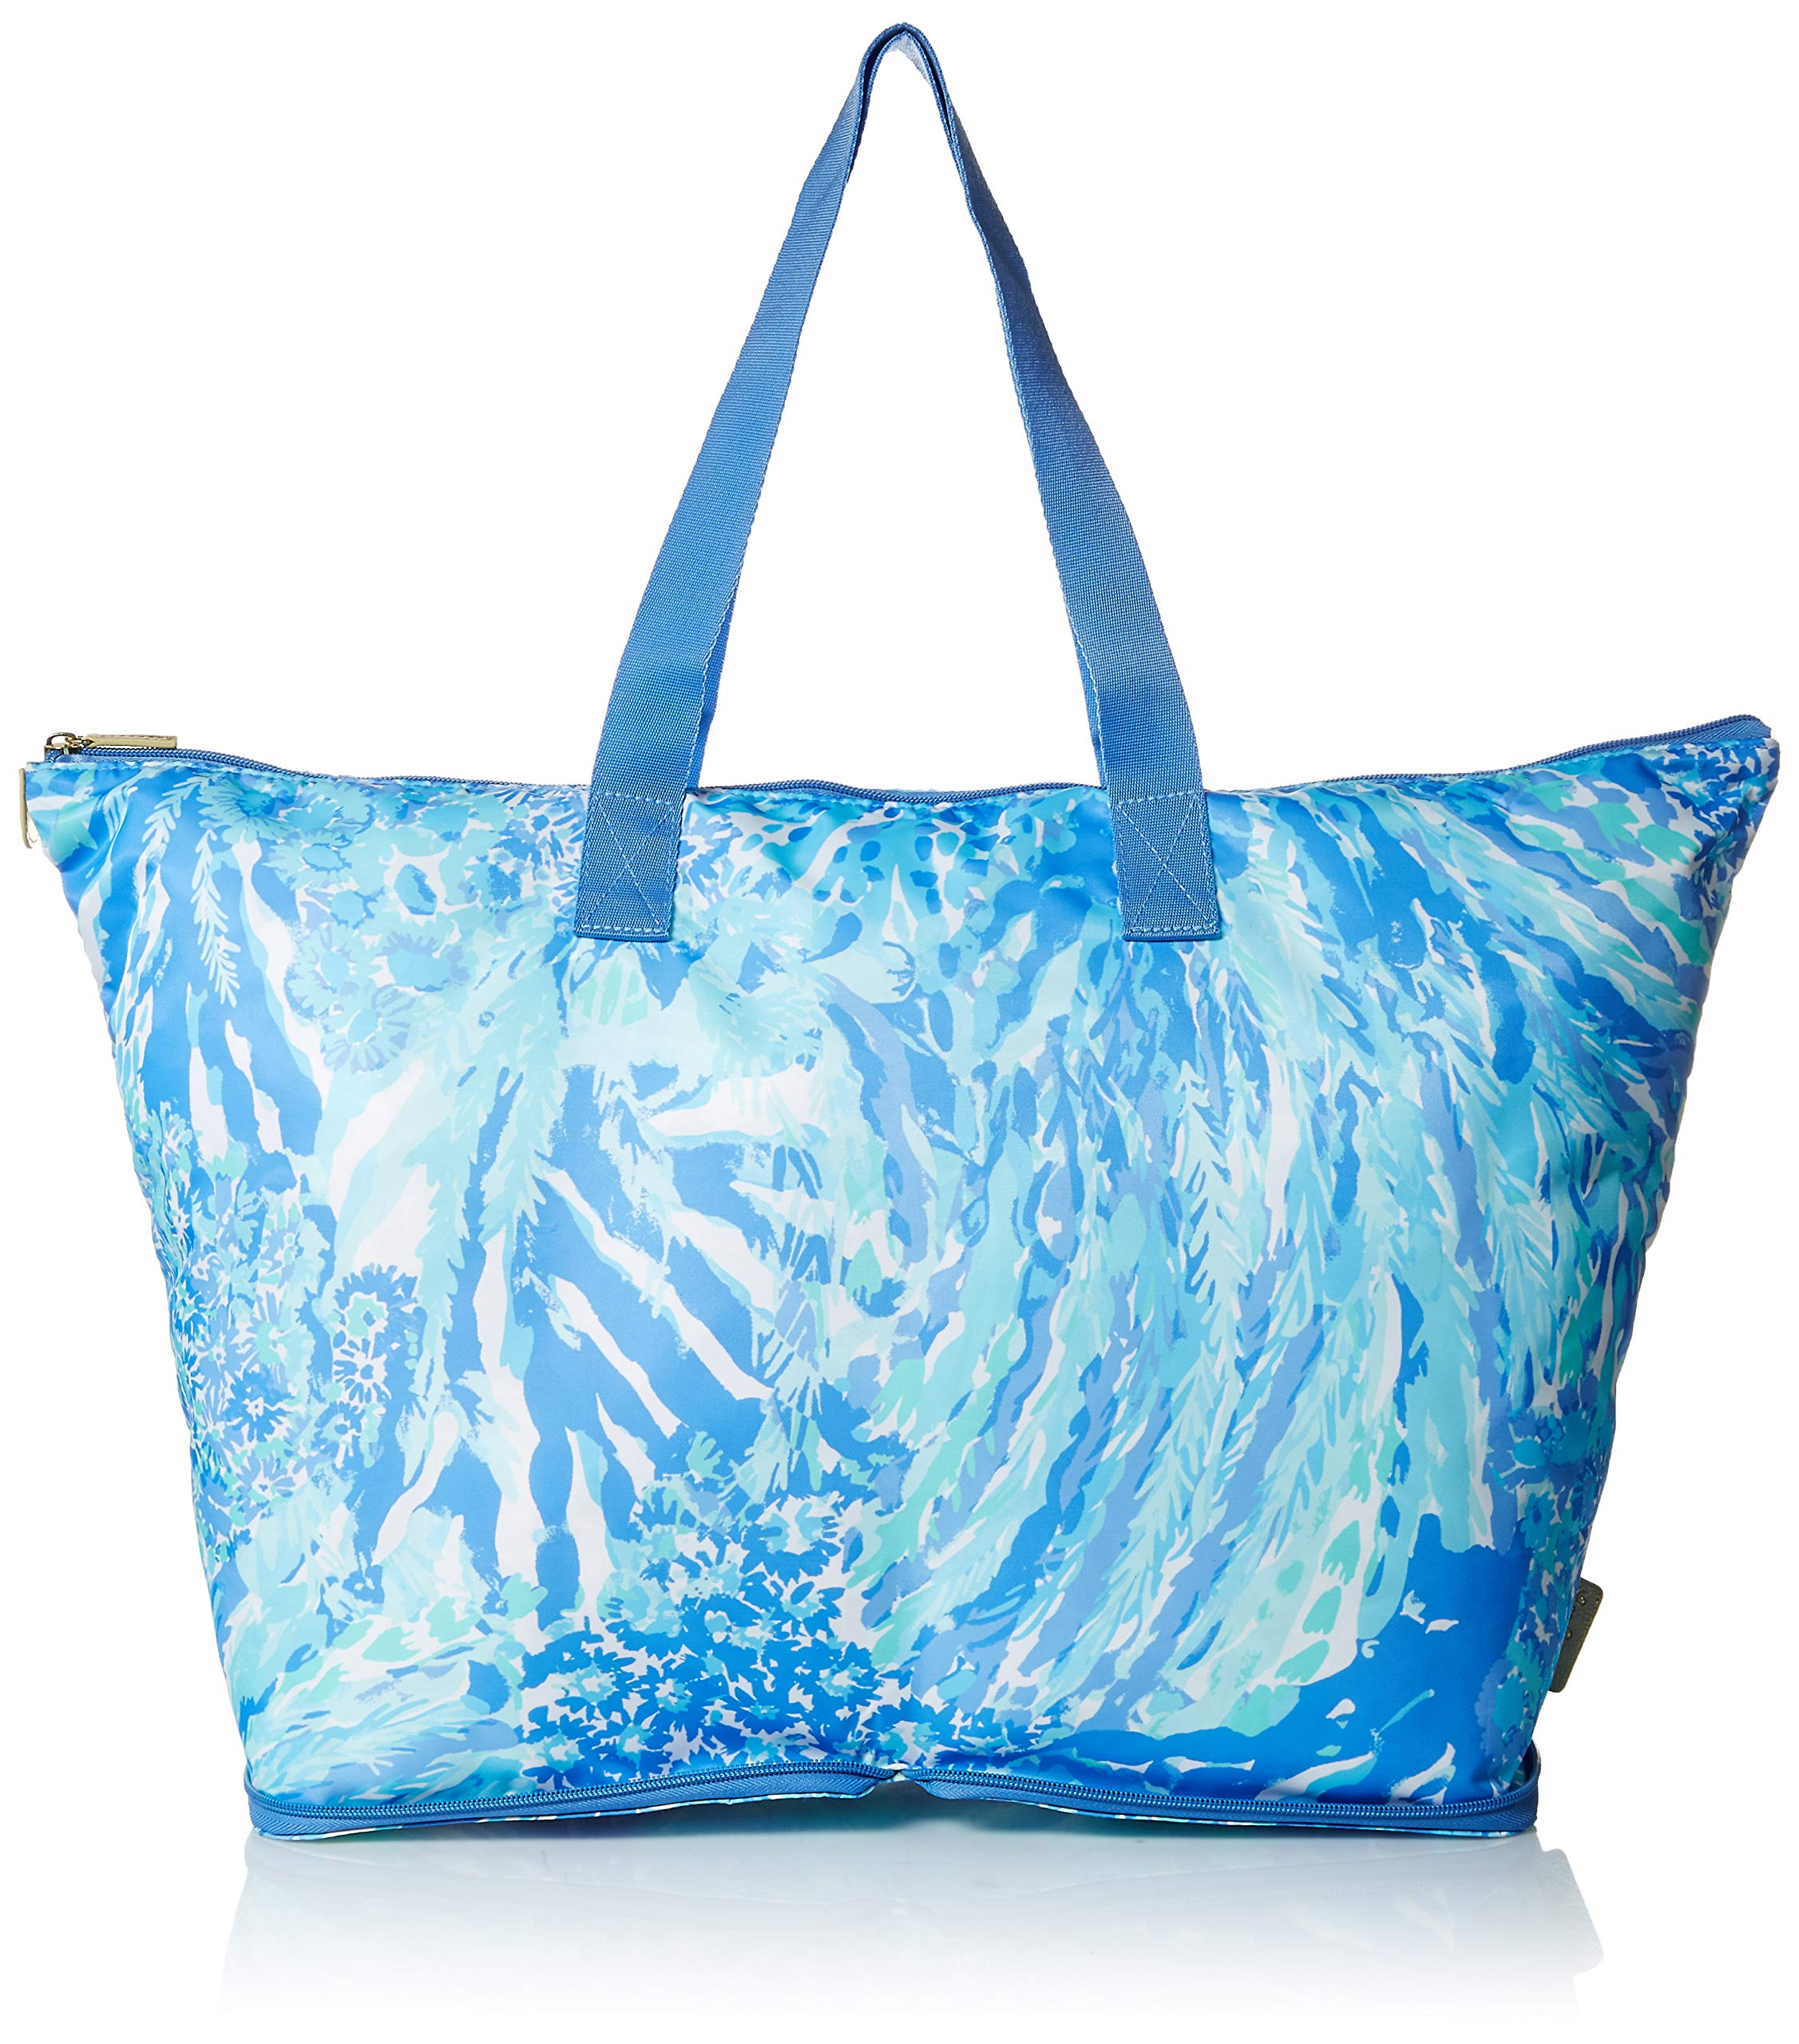 Lilly Pulitzer Women's Getaway Packable Tote, Blue Heaven Hey Soleil, 1 SZ by Lilly Pulitzer